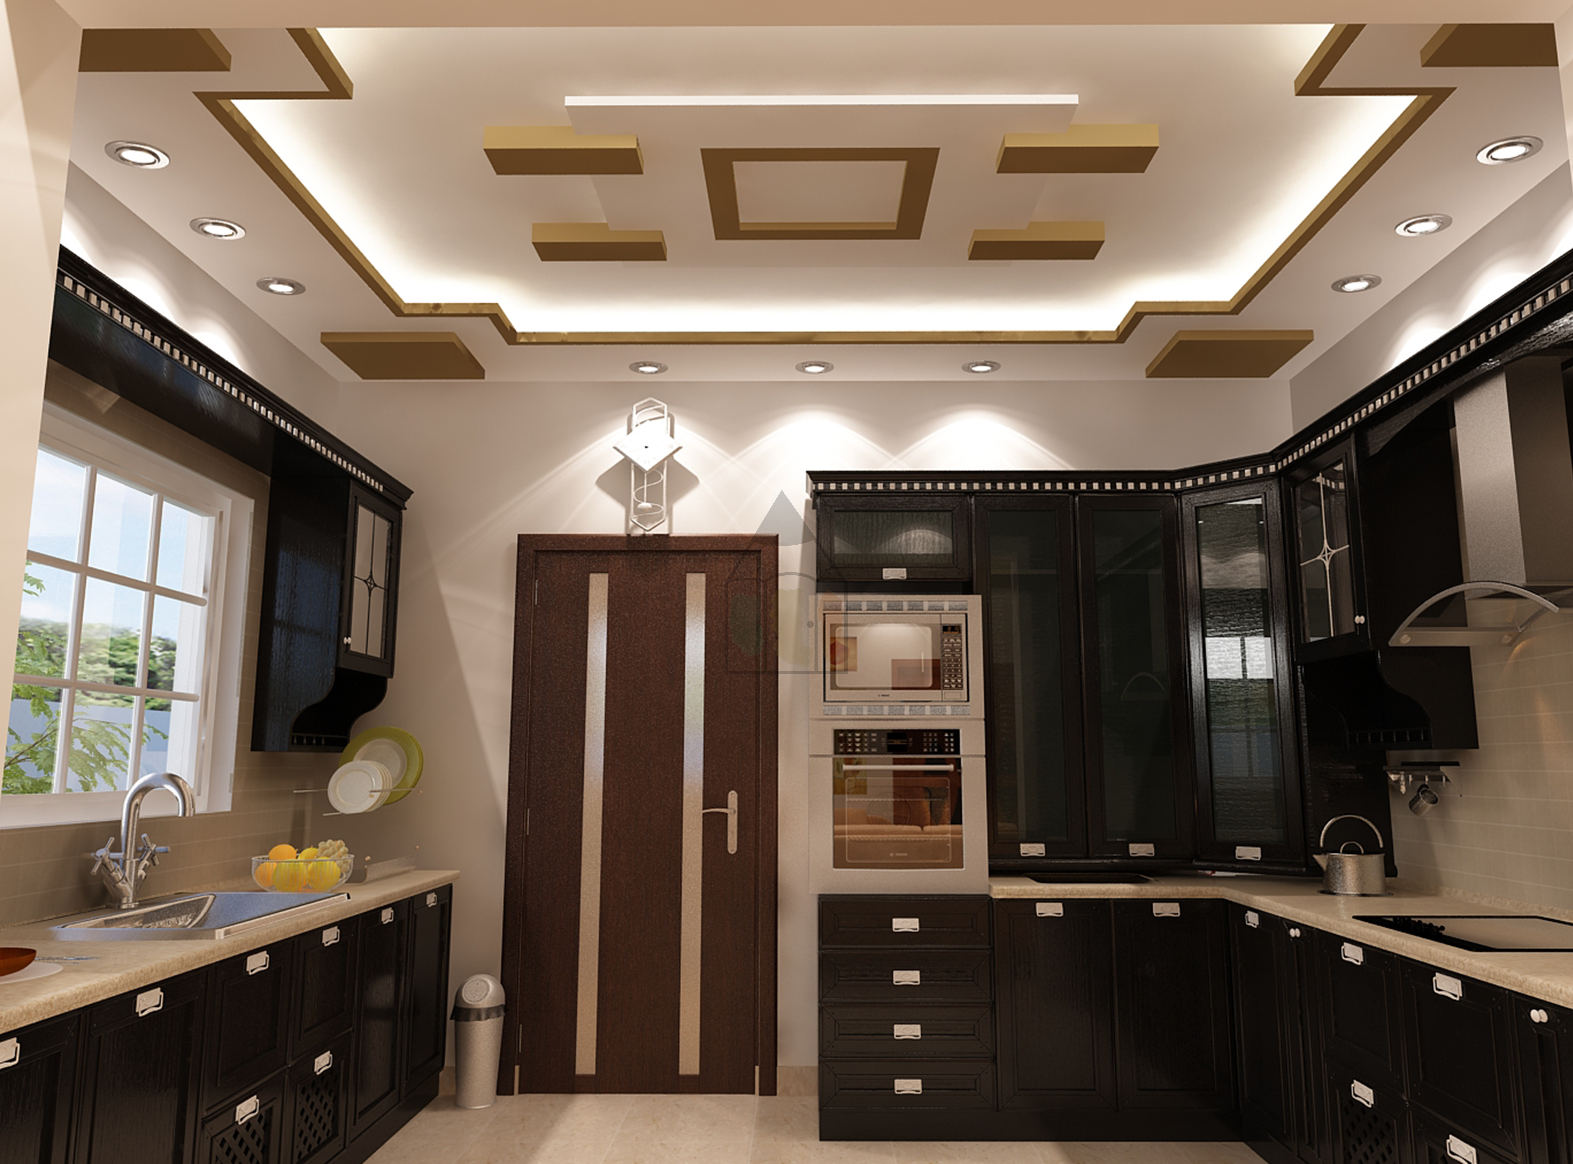 Pakistani Kitchen Design Kitchen Ceiling Design Ceiling Design Modern Ceiling Design